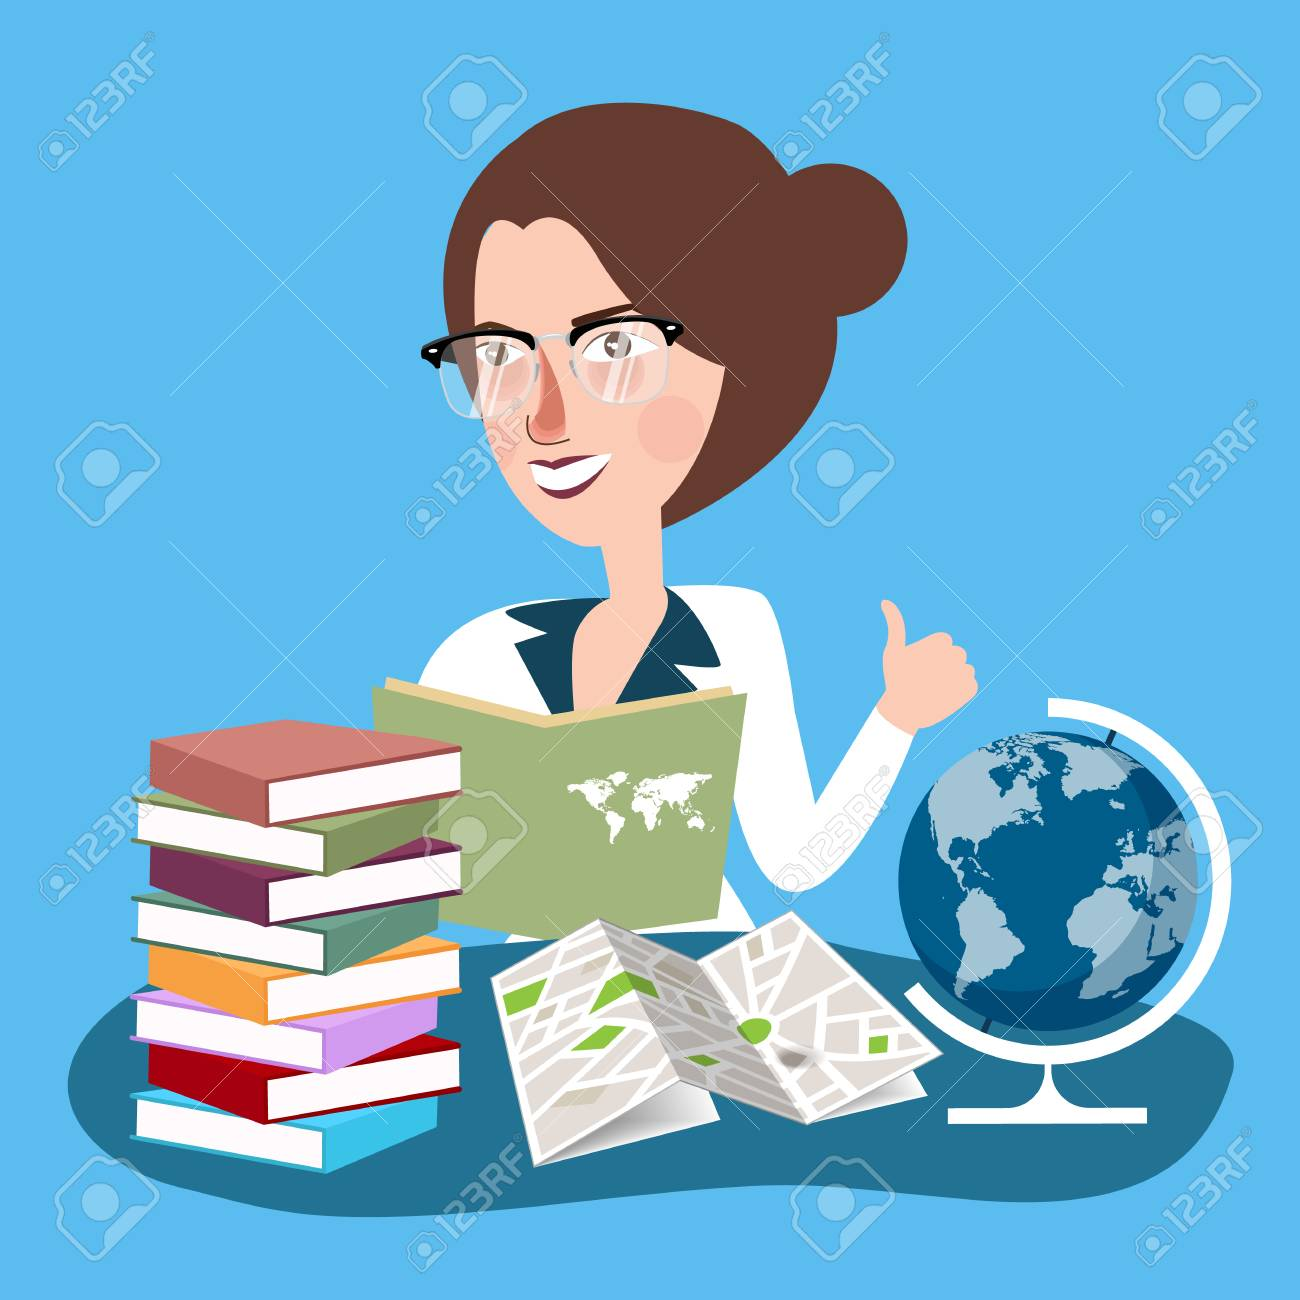 dd8b2f6a8f3 teacher woman with glasses read books with globe in desk learn..